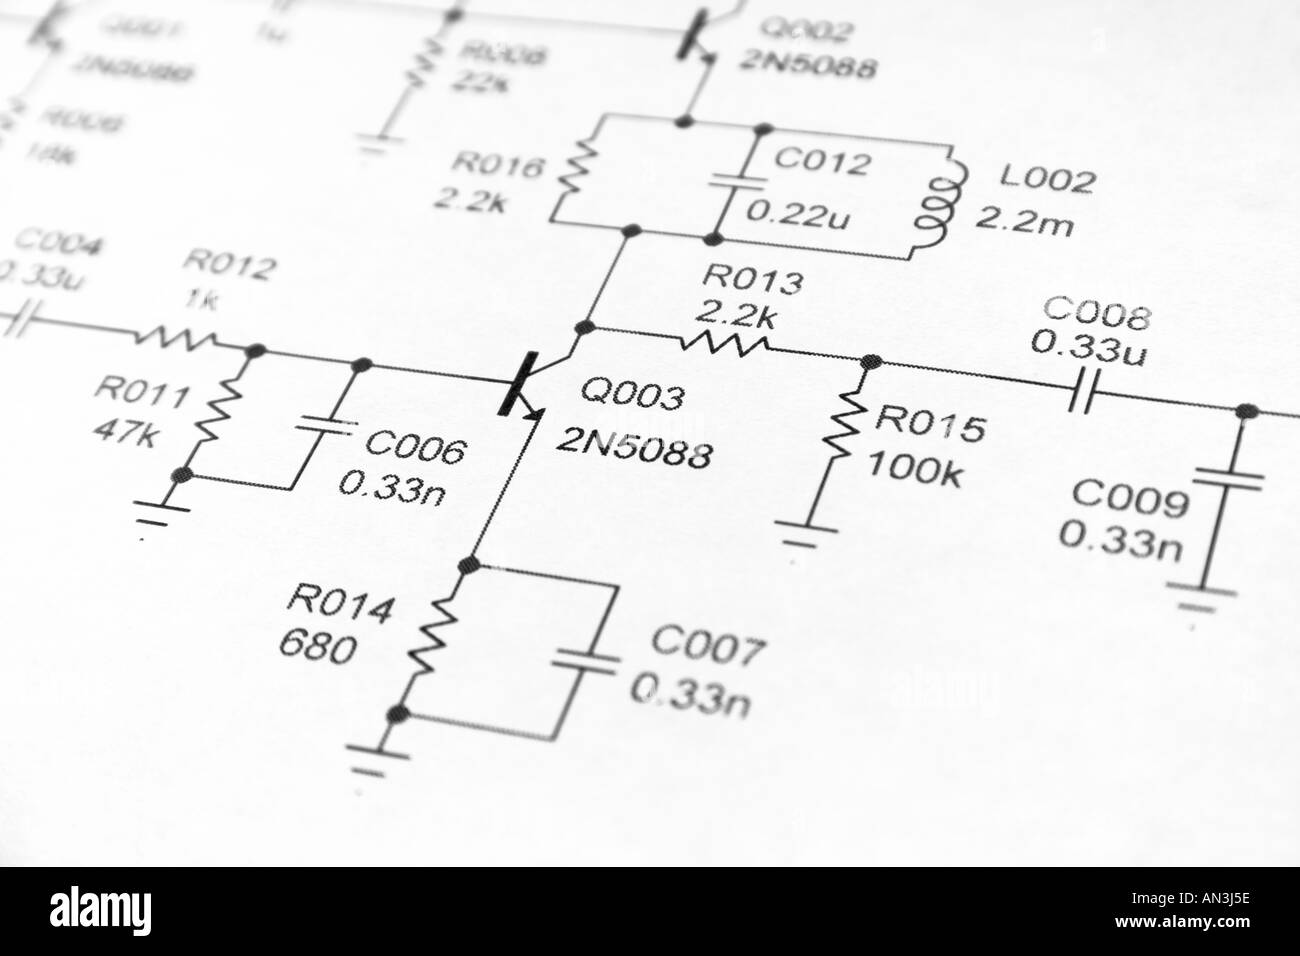 hight resolution of close up of electronics schematic diagram